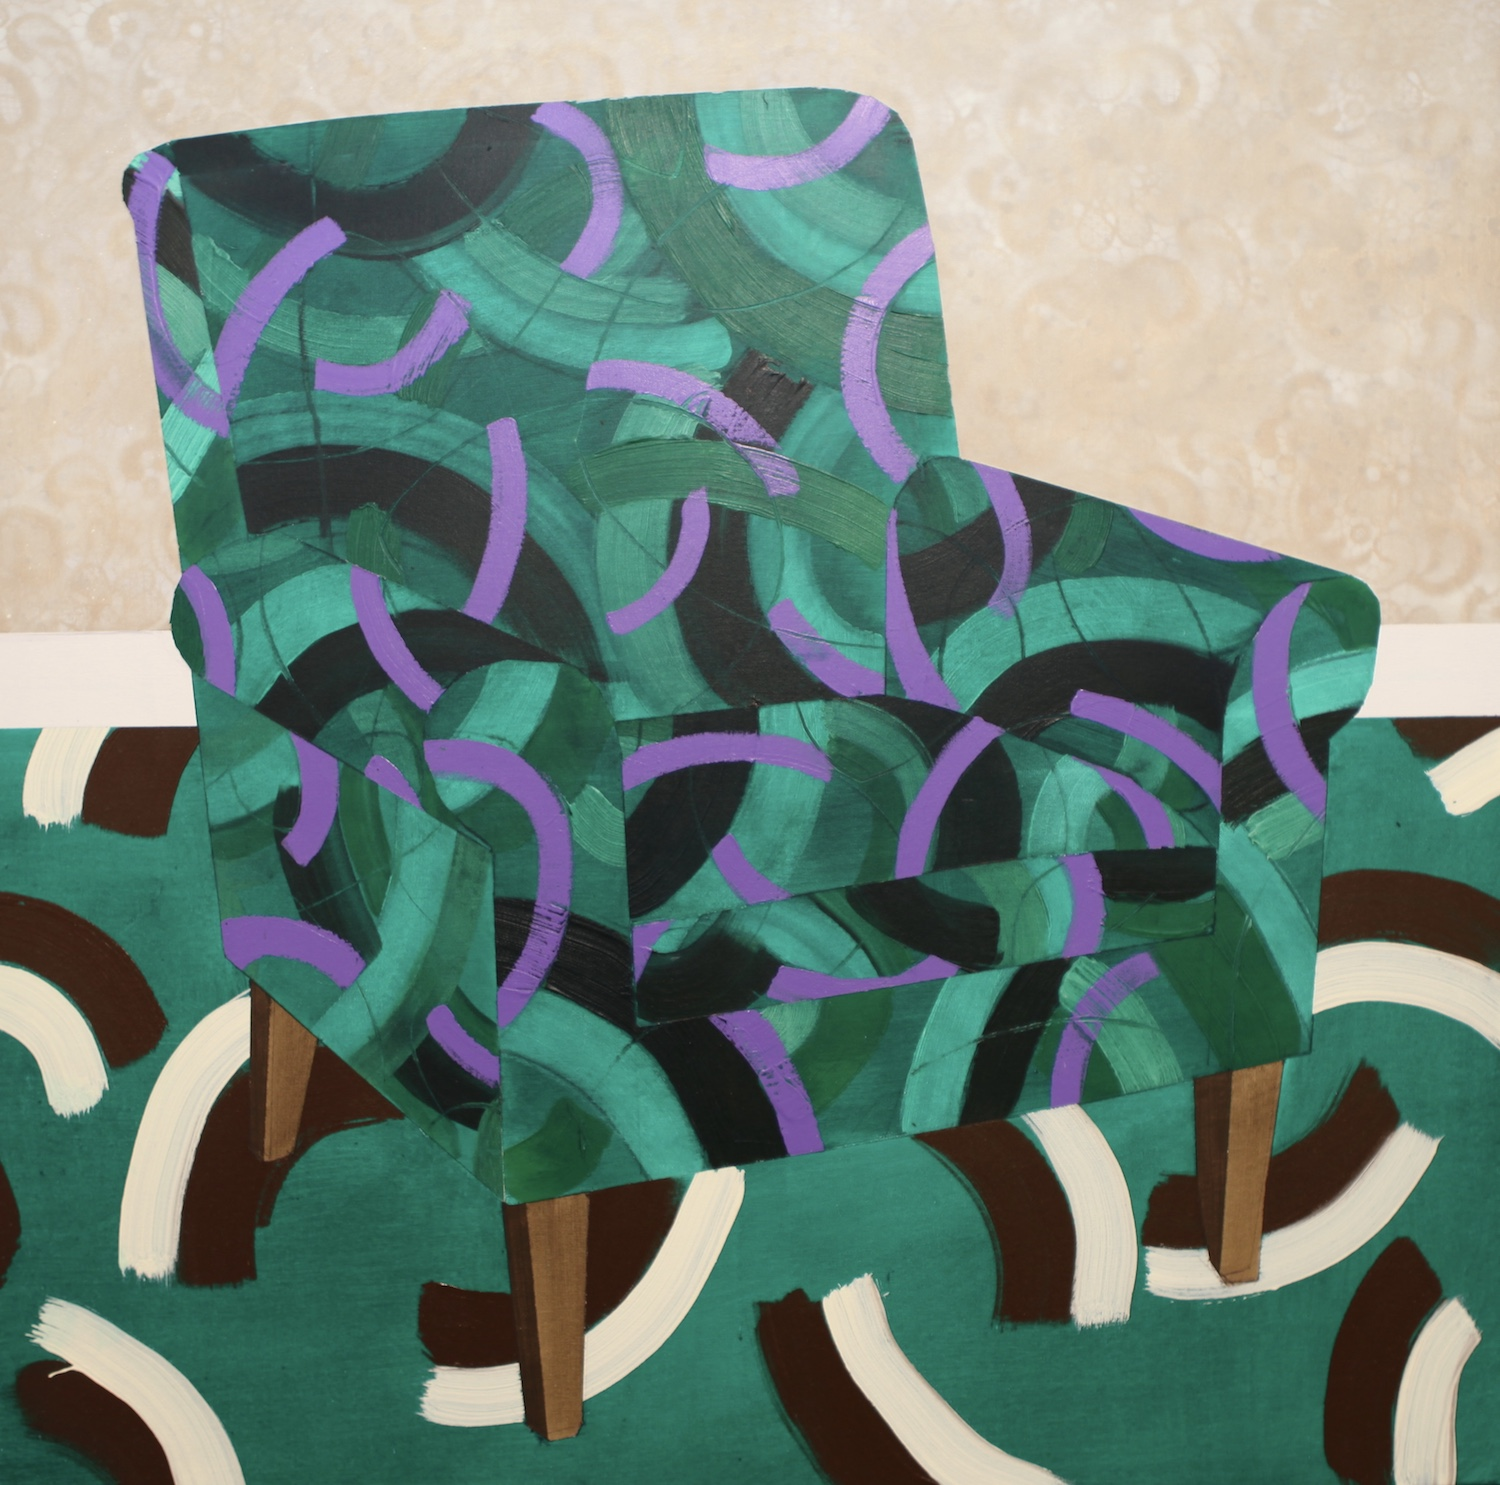 Green chair. Charles Inge. Jackson's Painting Prize.